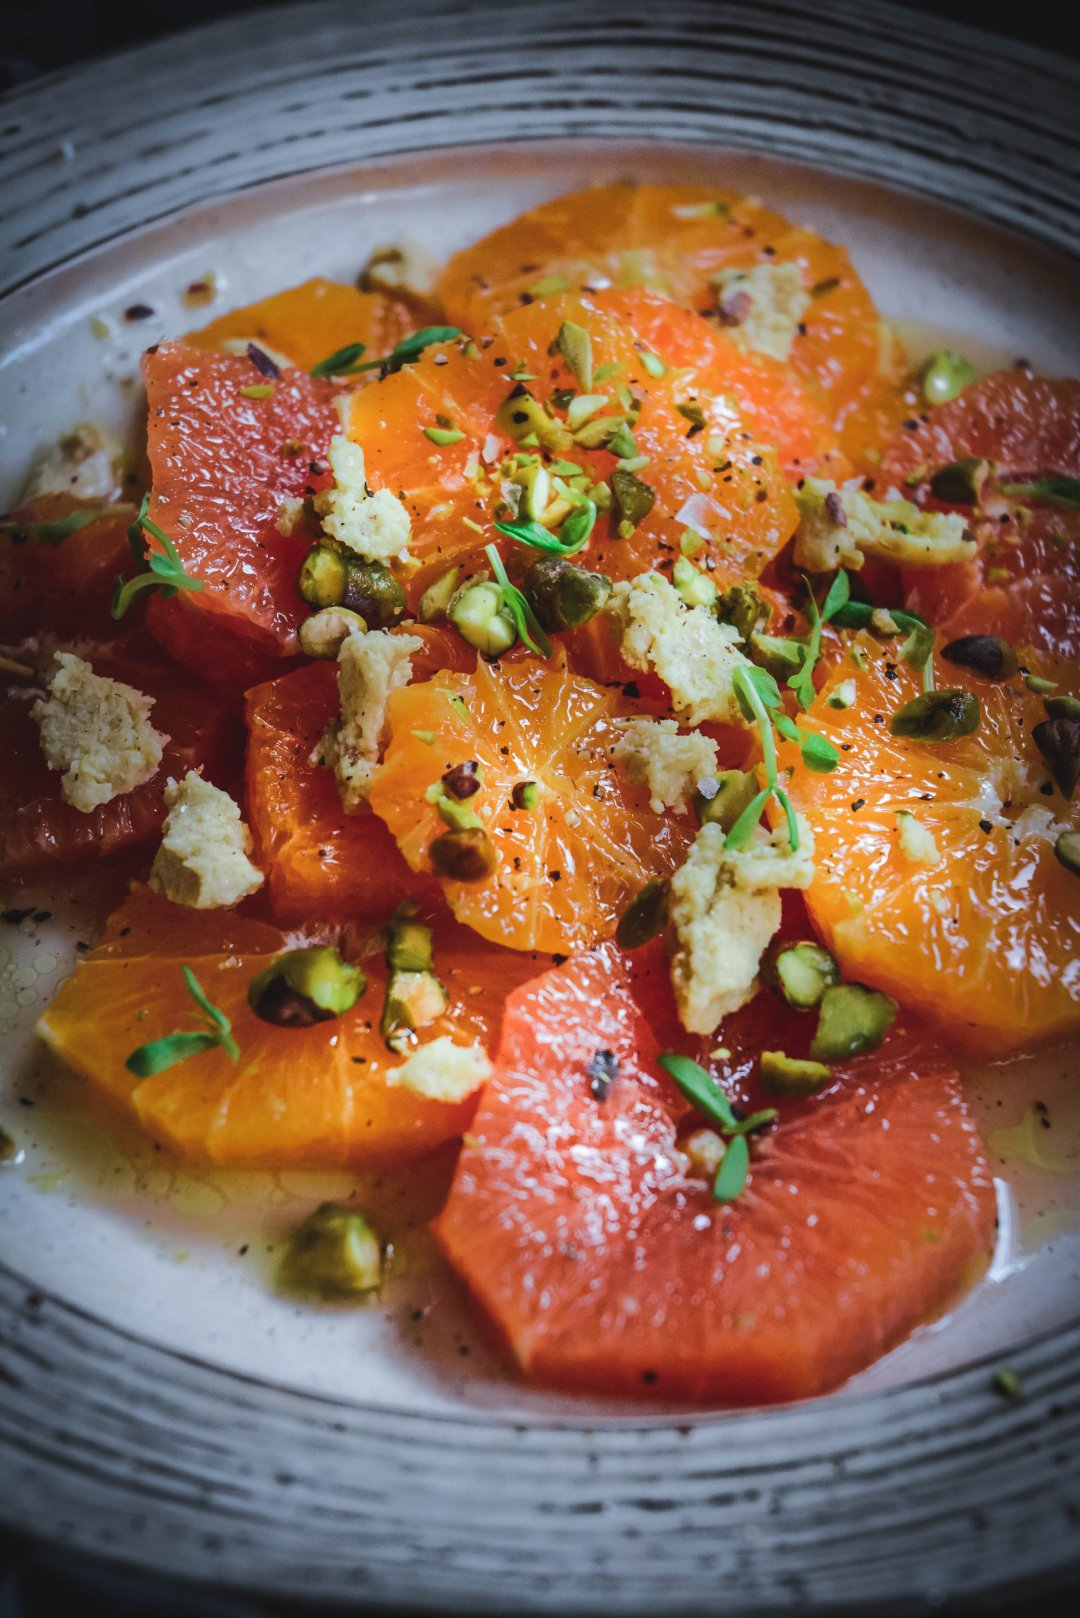 A delicious citrus salad full of flavor. Orange slices are combined with a sweet and salty dressing, topped with cashew cheese, made with nutritional yeast and toasted pistachios. #vegan #citrus #citrussalad #vegansalad #paleosalad #paleofood #paleo #calmeats #orange #cashewcheese #nutritionalyeastrecipes